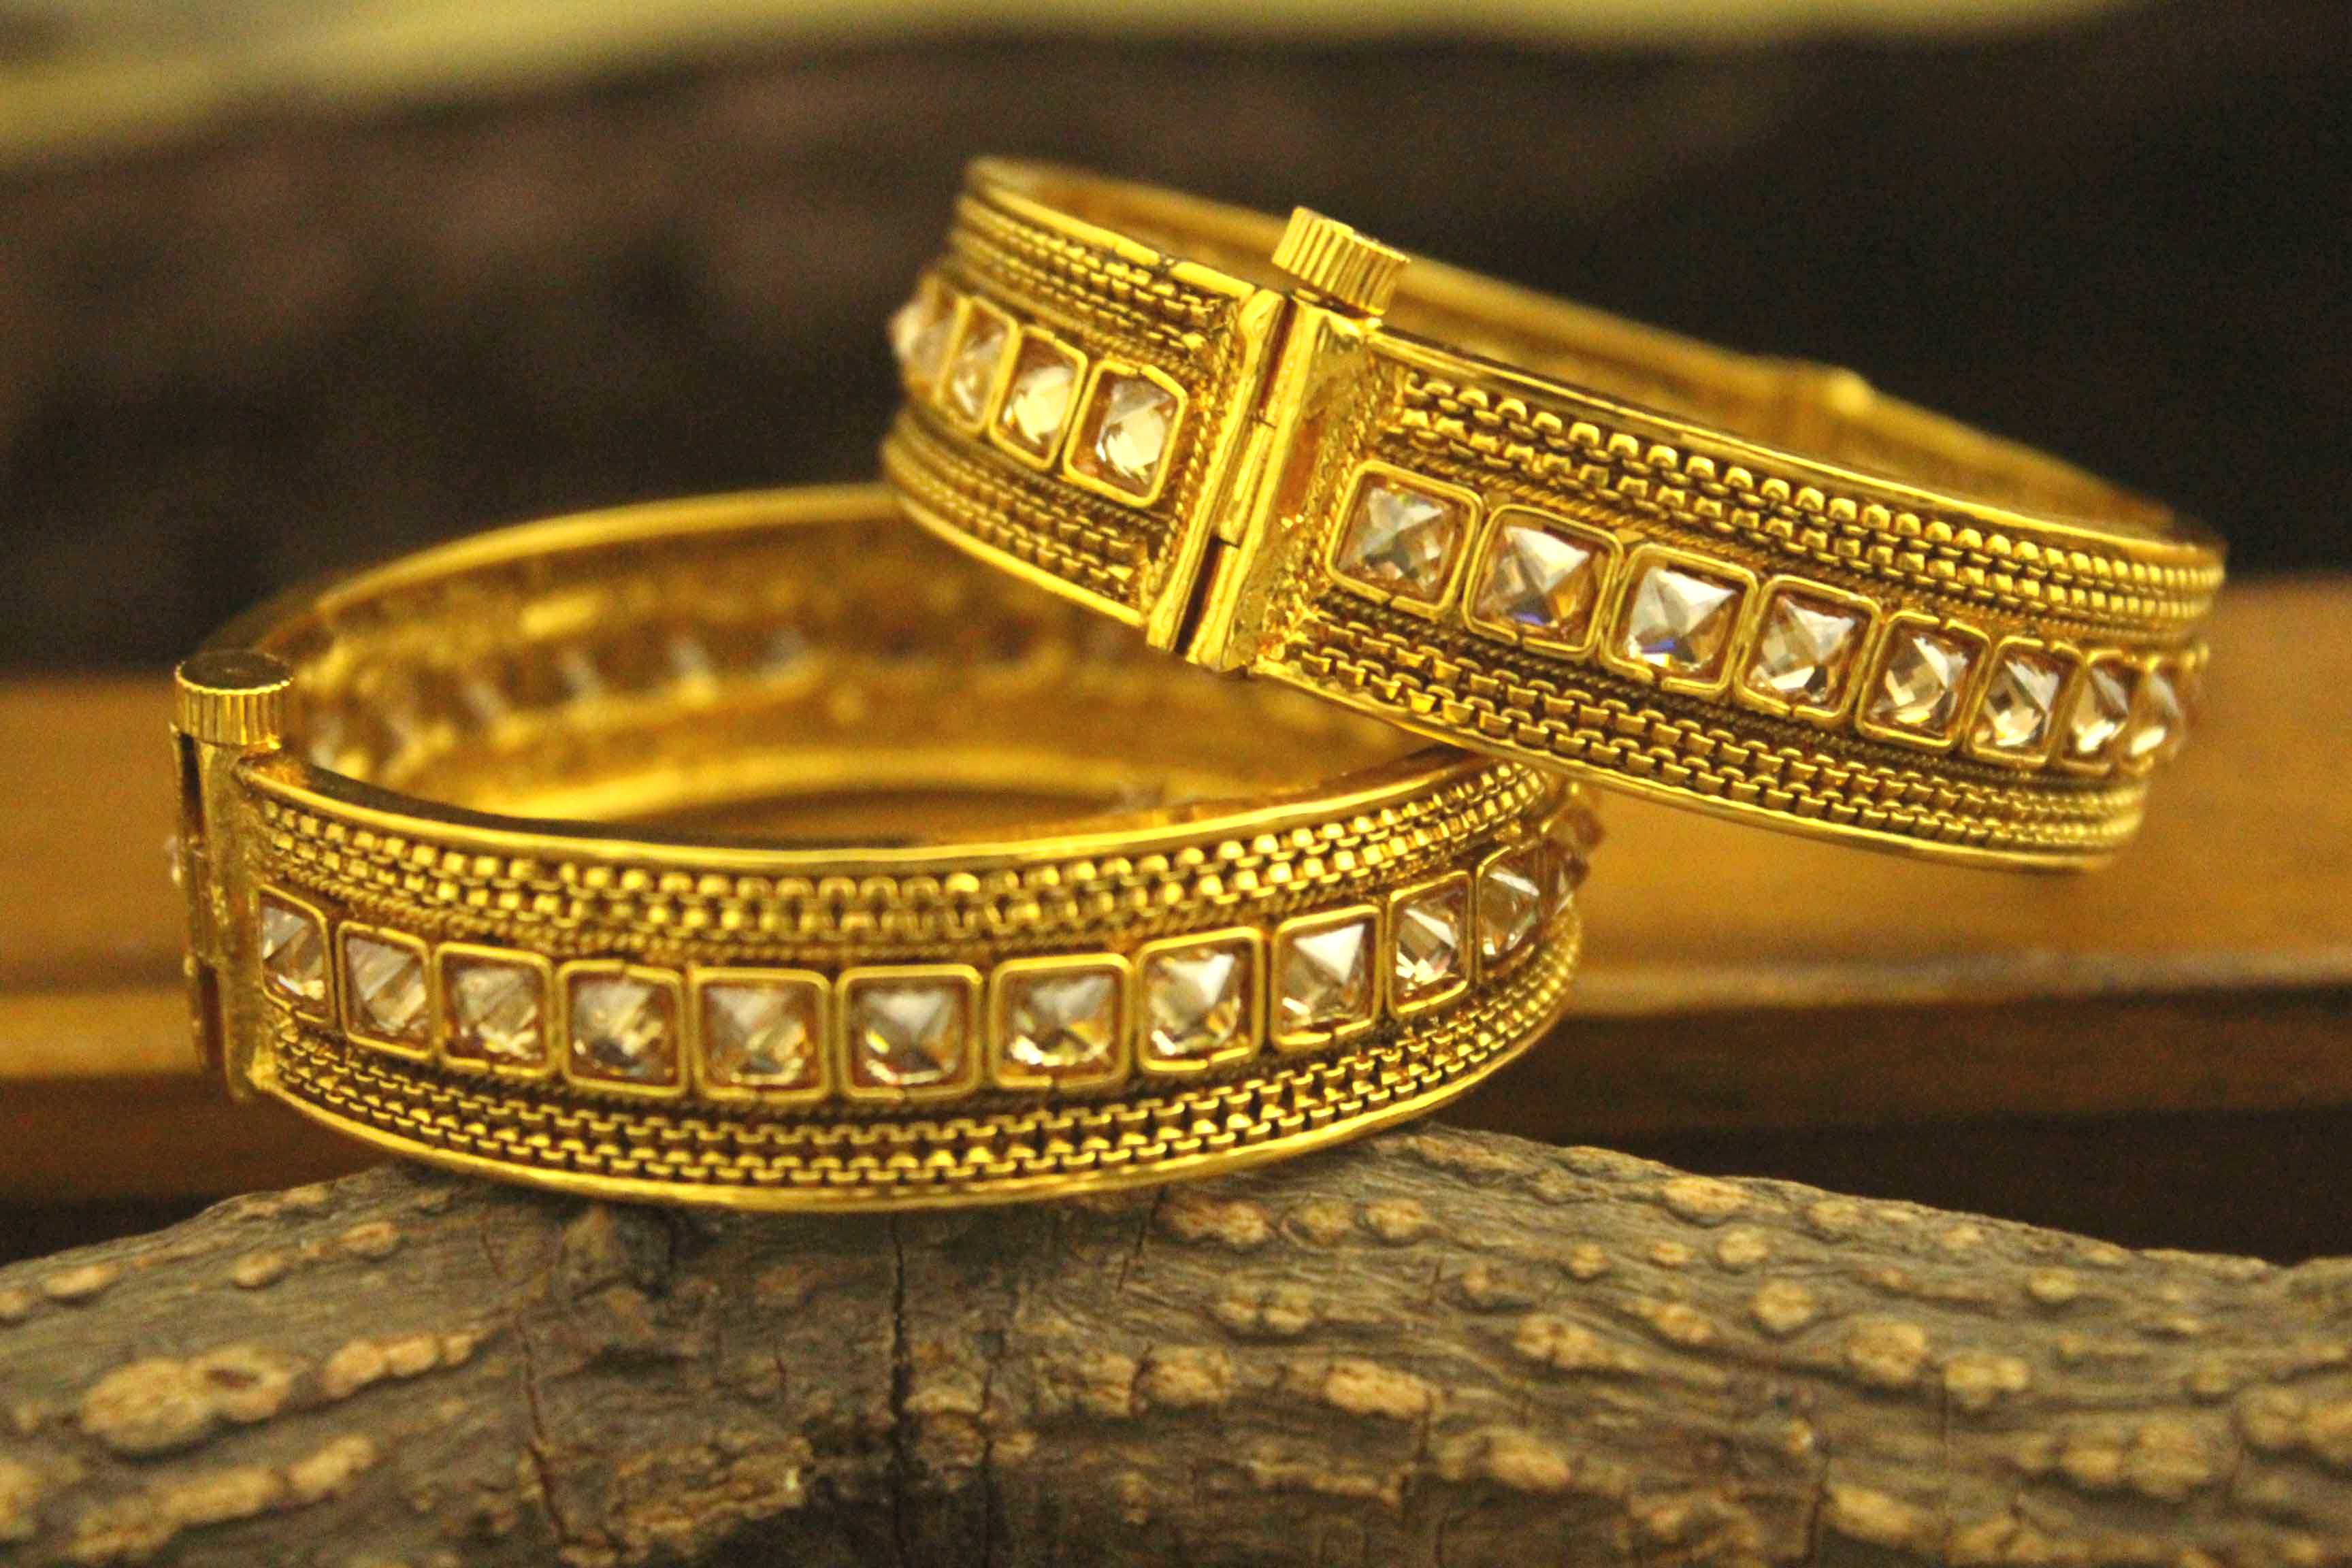 novelties gold on sankha golden and bangle weight one polish wear bengali yr with red pola light guarentee prasad bangles thread fibre daily design products designer